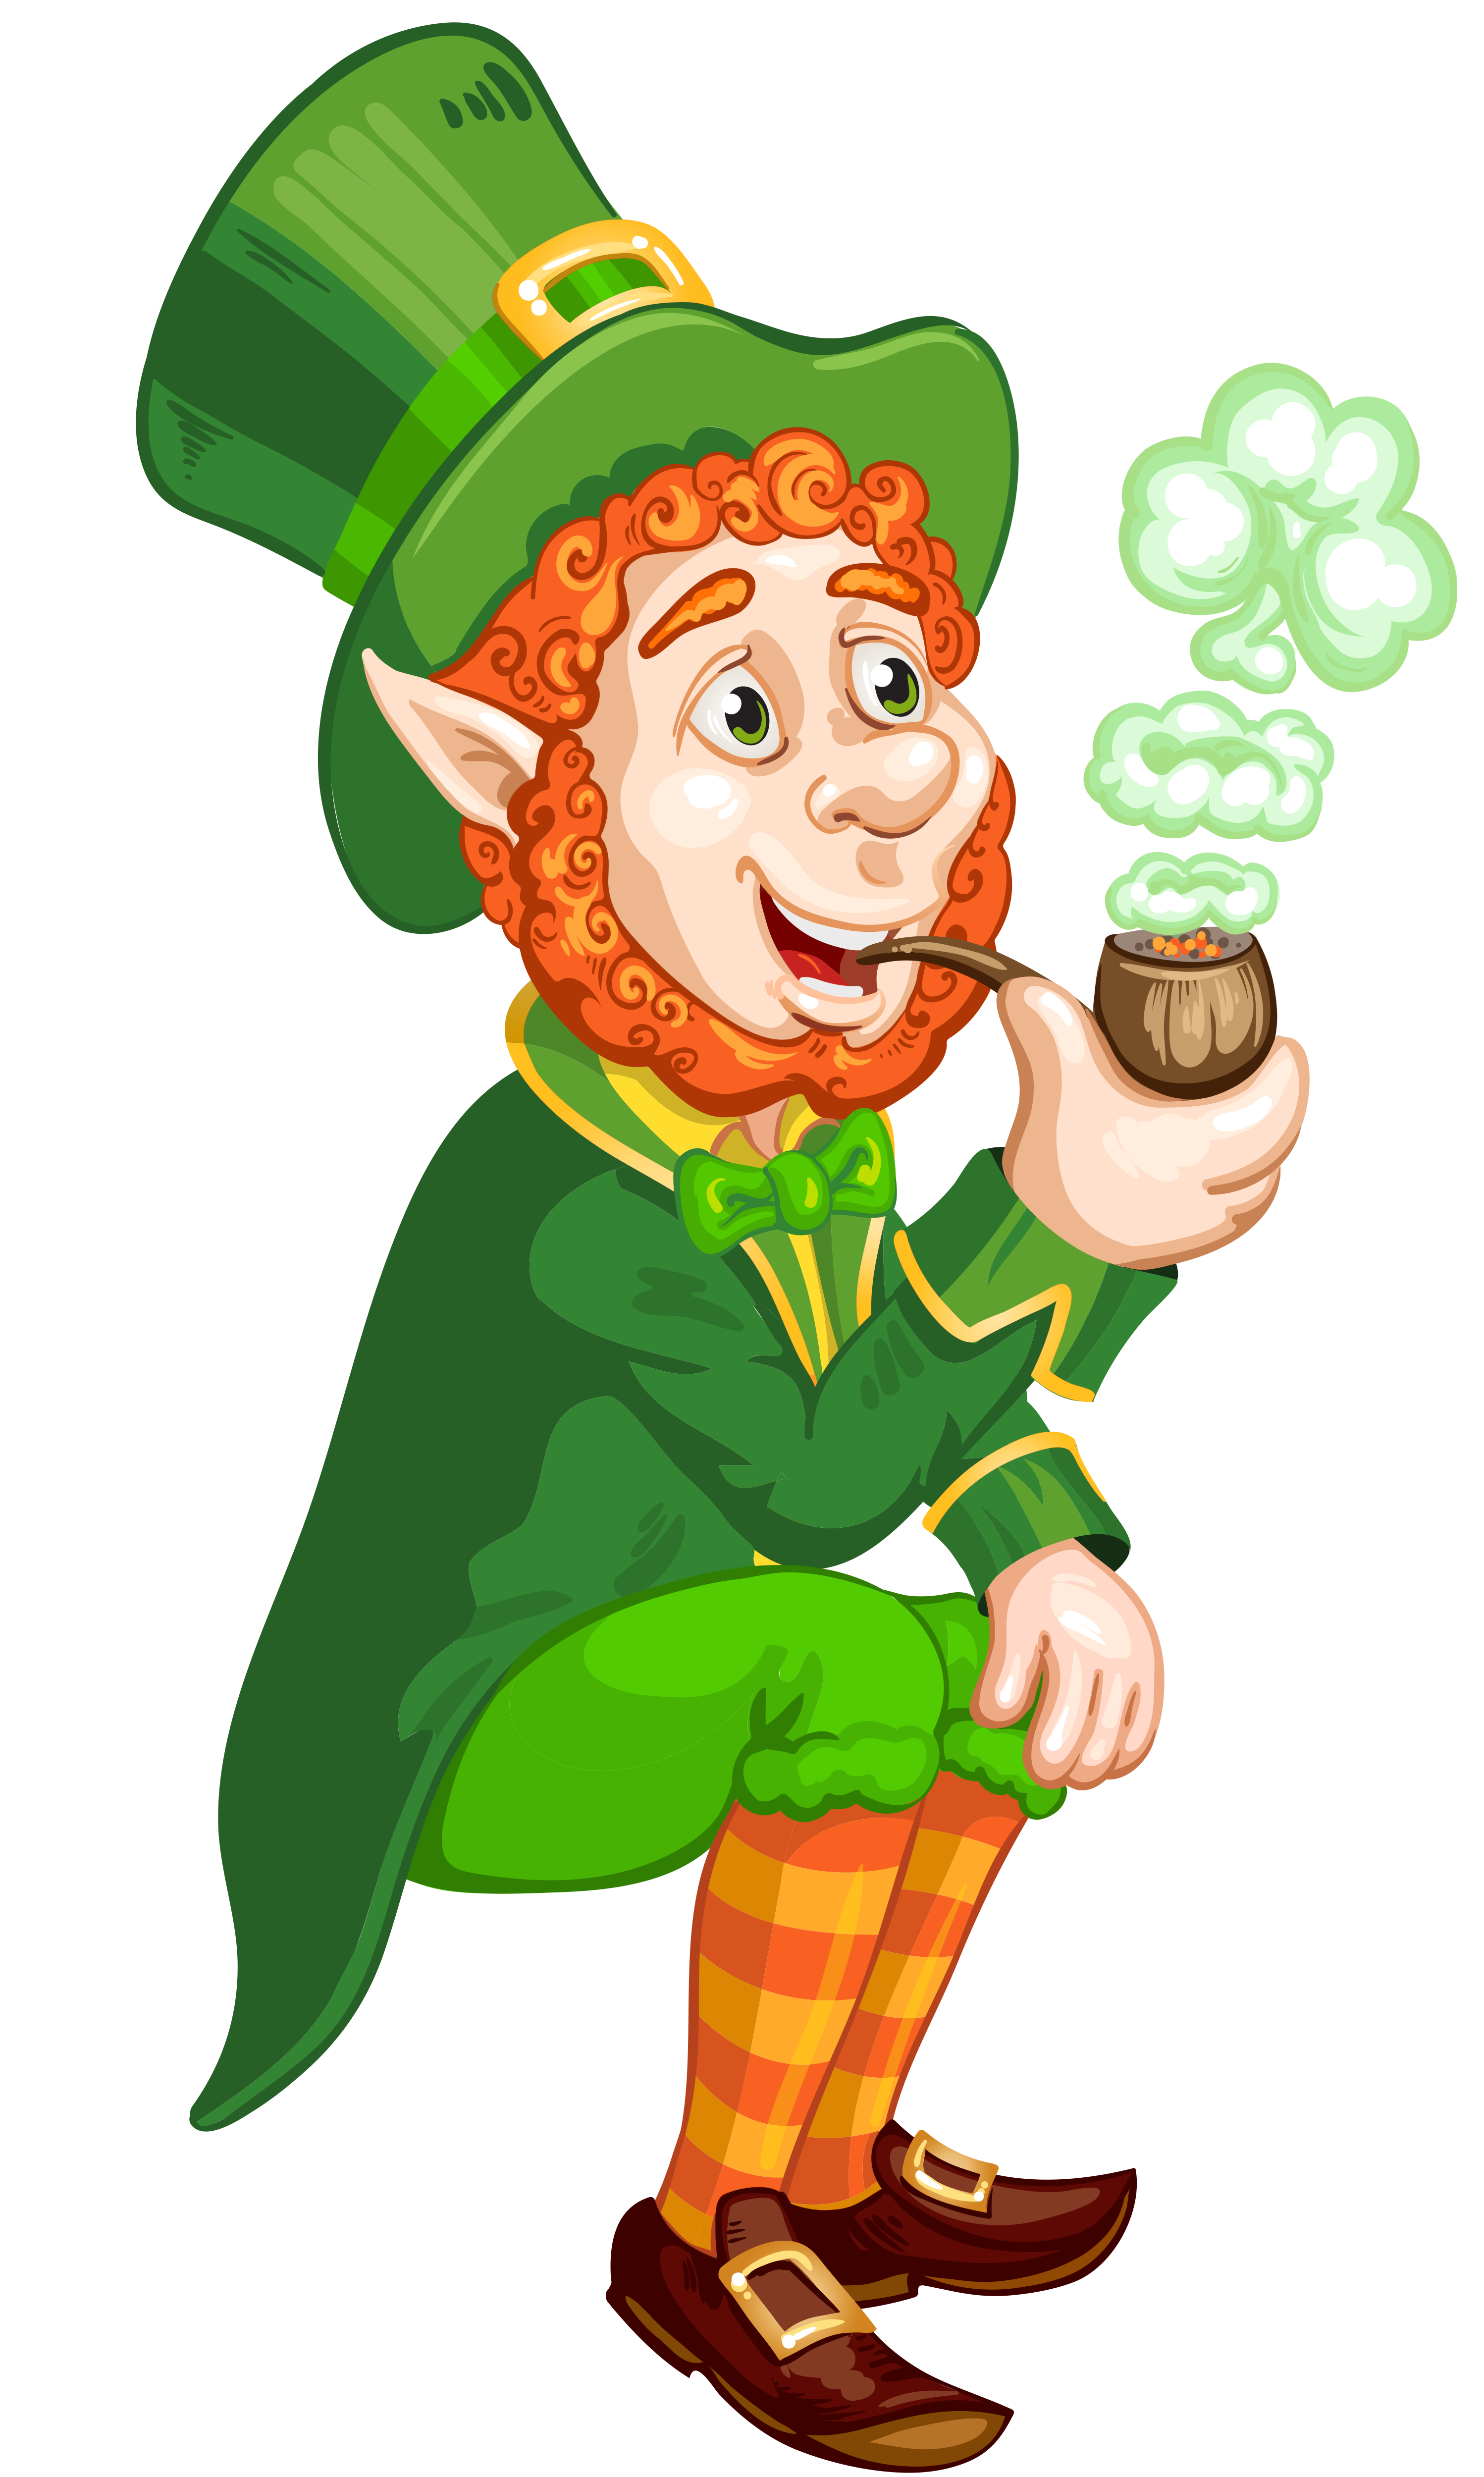 Leprechaun clip art png. St patrick day transparent